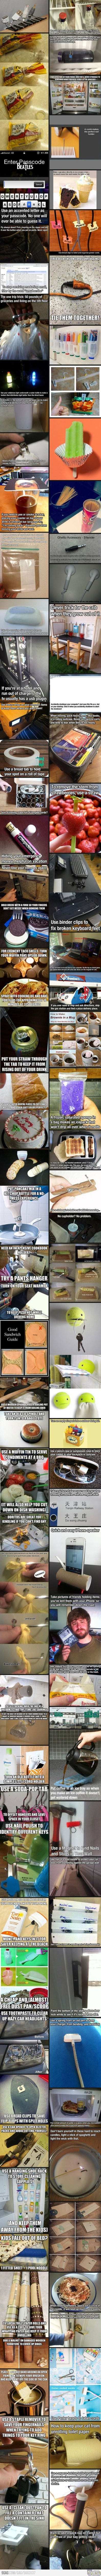 These are some useful tricks